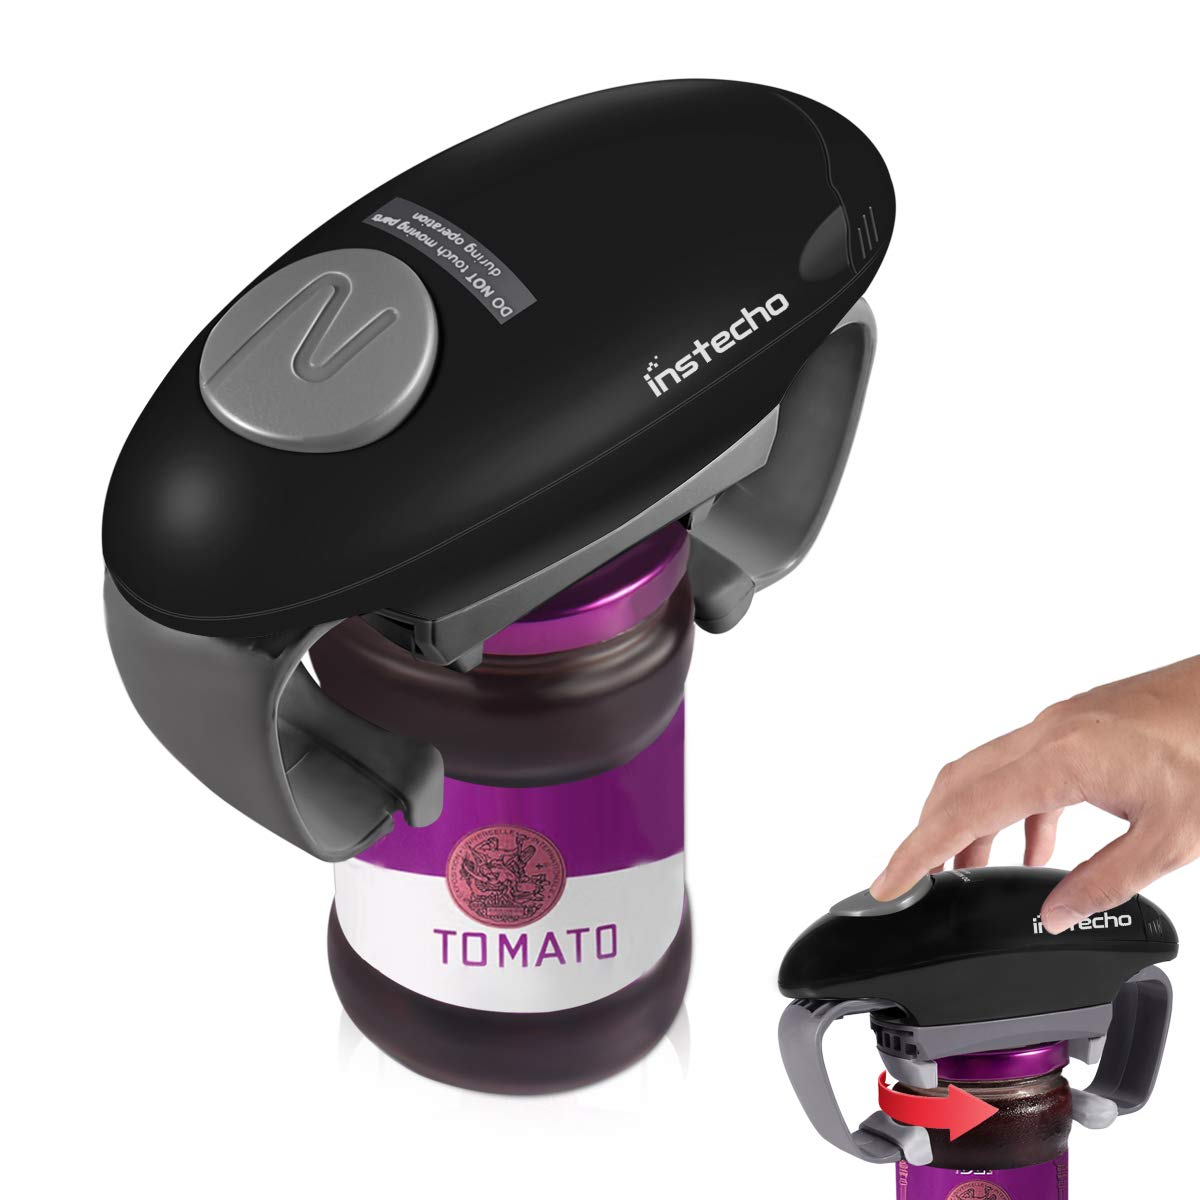 Automatic Jar Opener, Hands Free Easy Open Can Tin Open Tool Electric Jar Opener For New Factory Sealed Jars (Black)